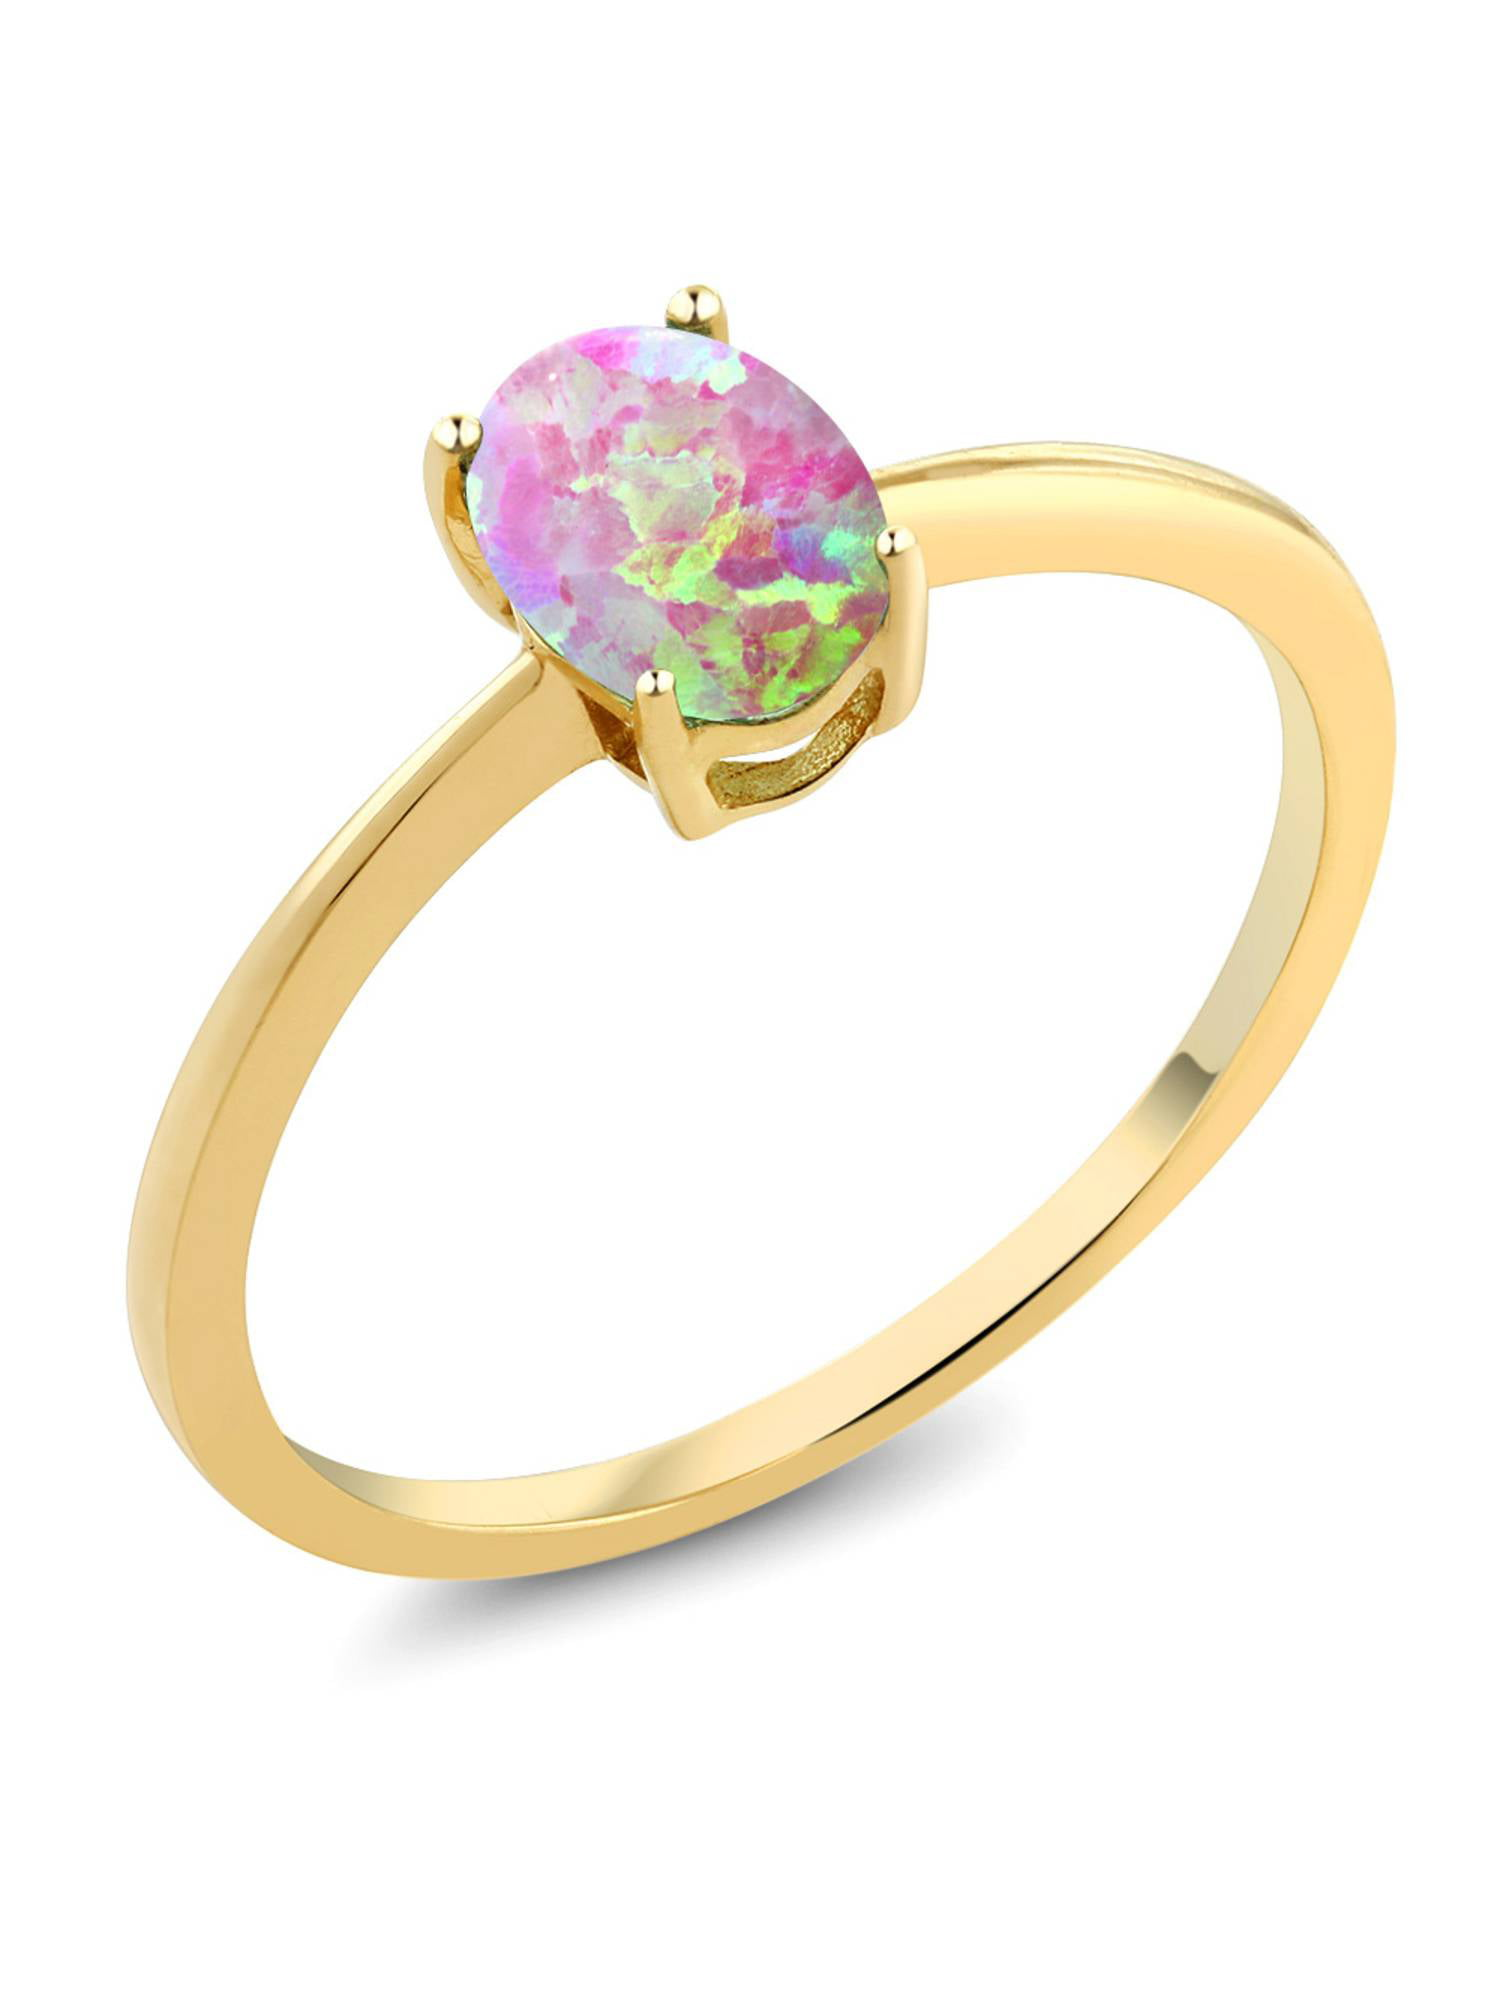 0.63 Ct Oval Pink Simulated Opal 10K Yellow Gold Solitaire Engagement Ring by Pink-Tourmaline Rings